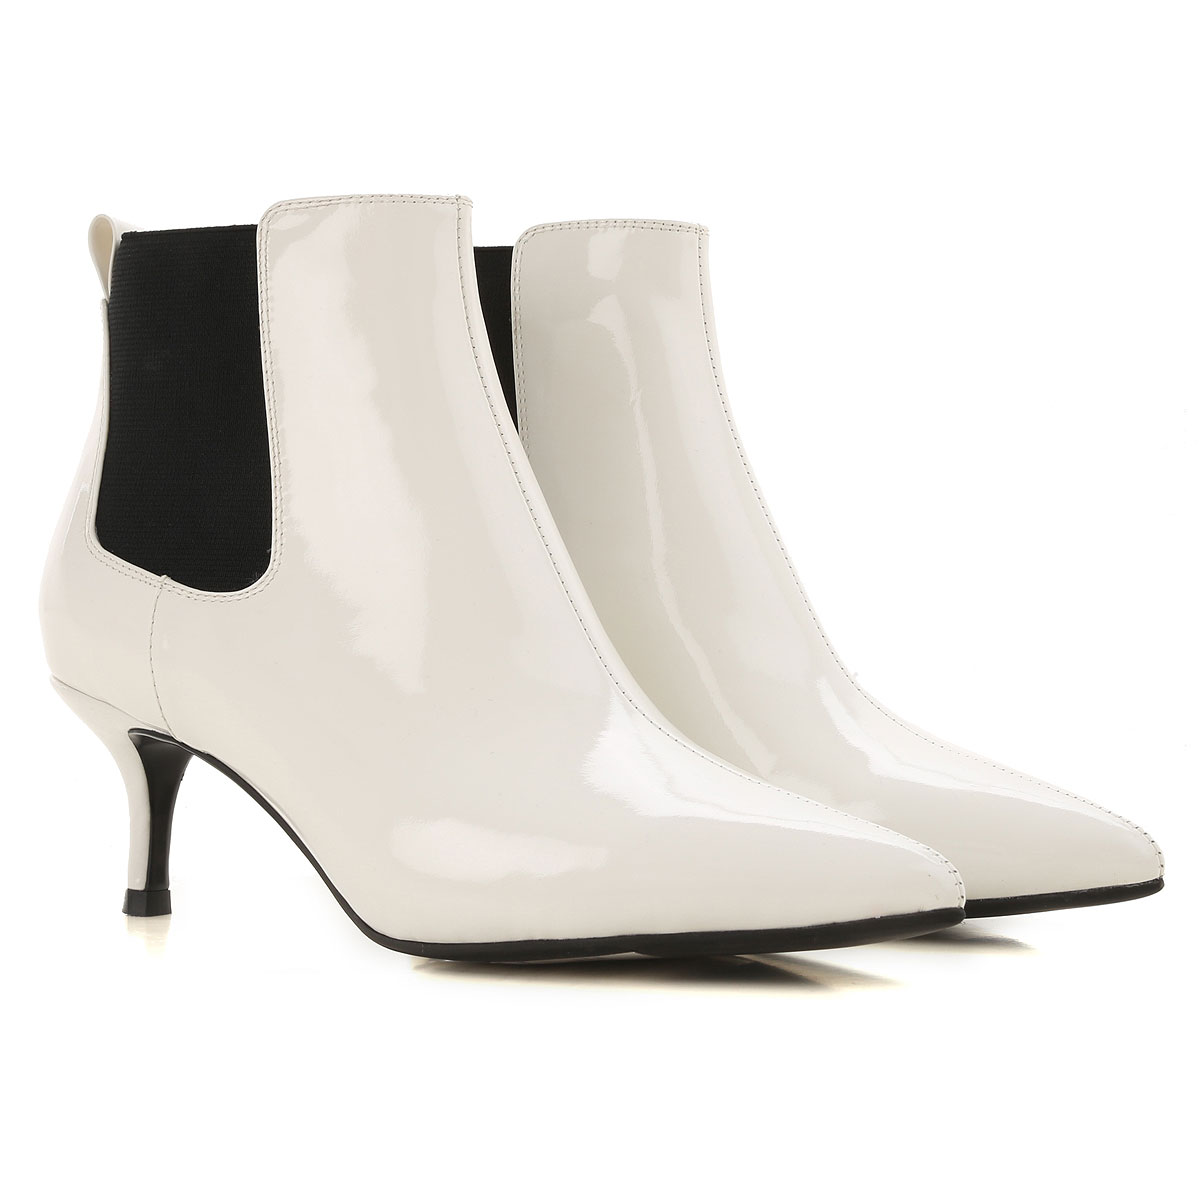 Image of ESSENTIEL Antwerp Boots for Women, Booties, White, Patent Leather, 2017, 6 7 8